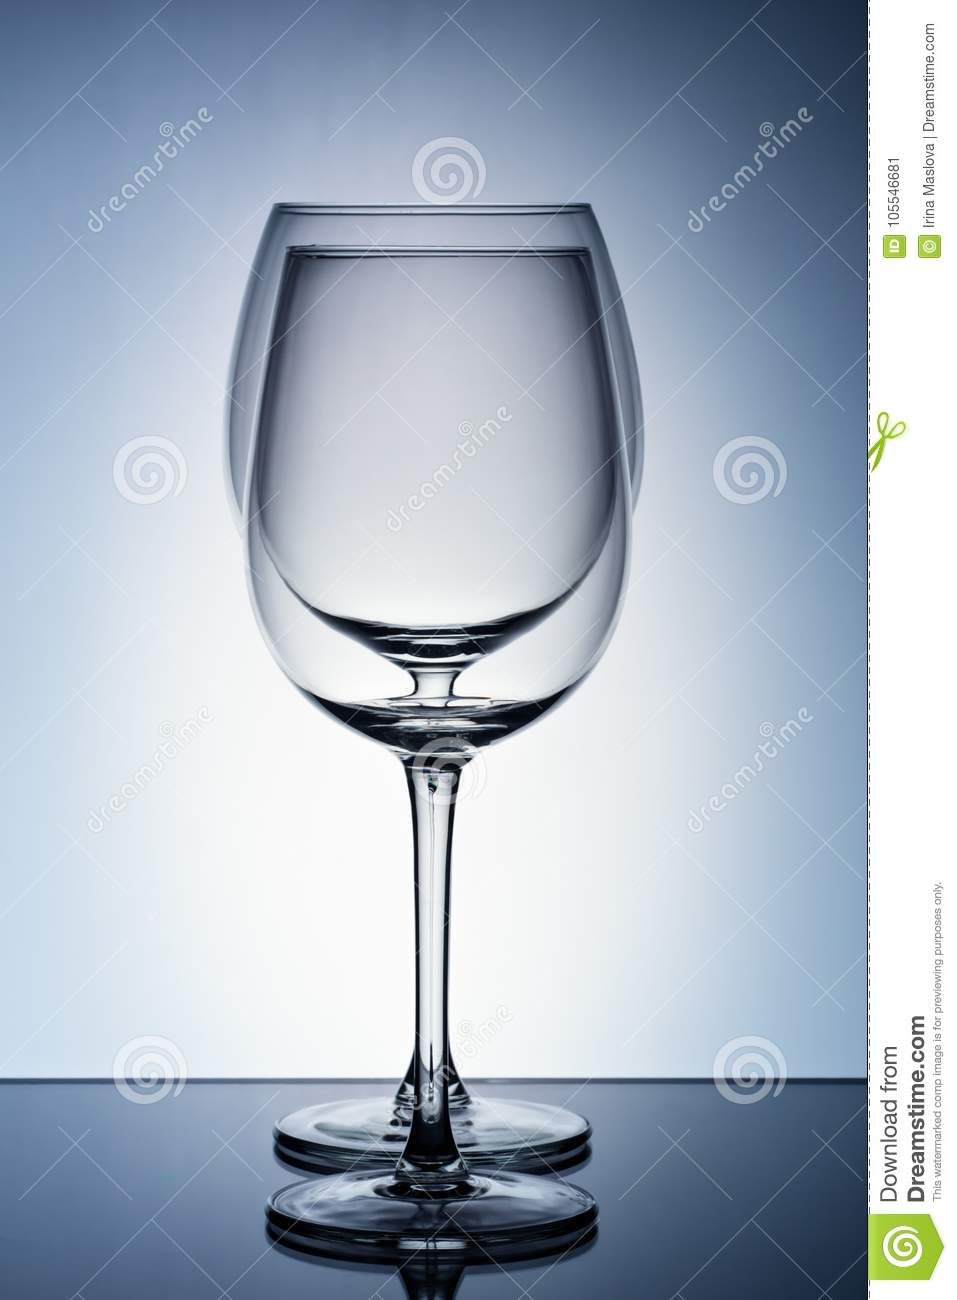 Two empty wineglass for red wine on diffusion lit background in abstract composition with reflection